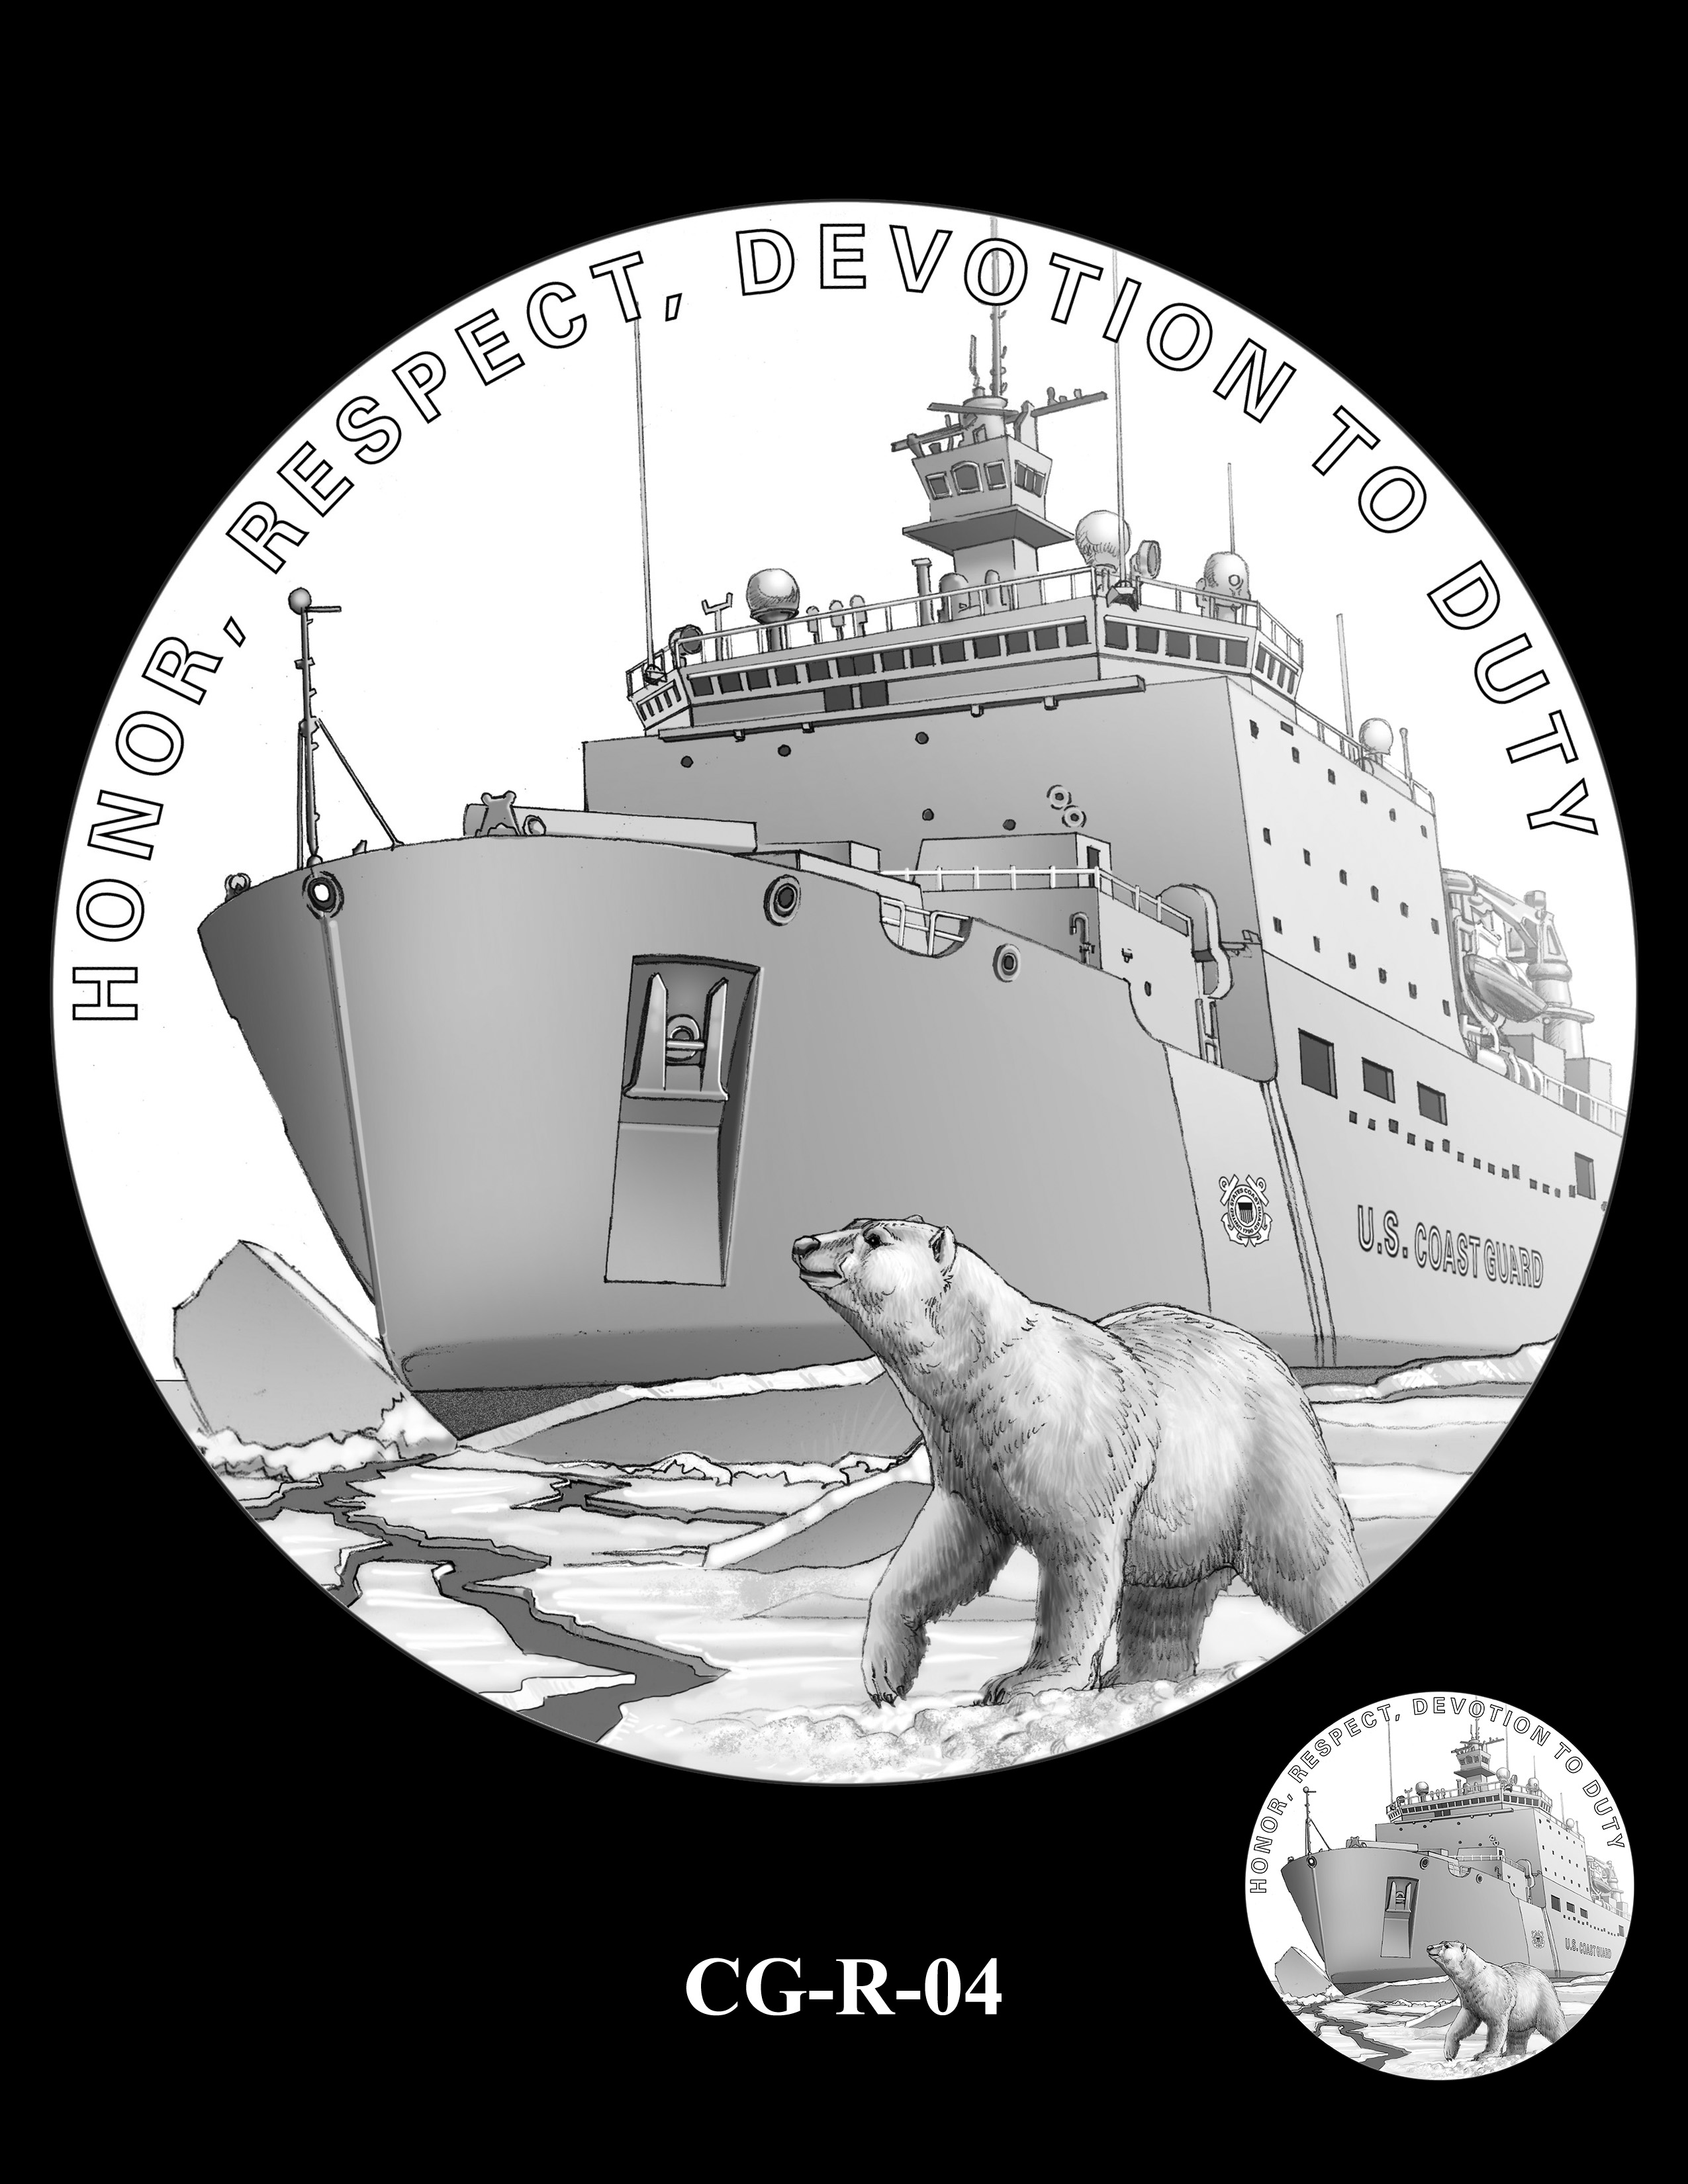 CG-R-04 Revised 9-24-18 -- Armed Forces Medal - Coast Guard